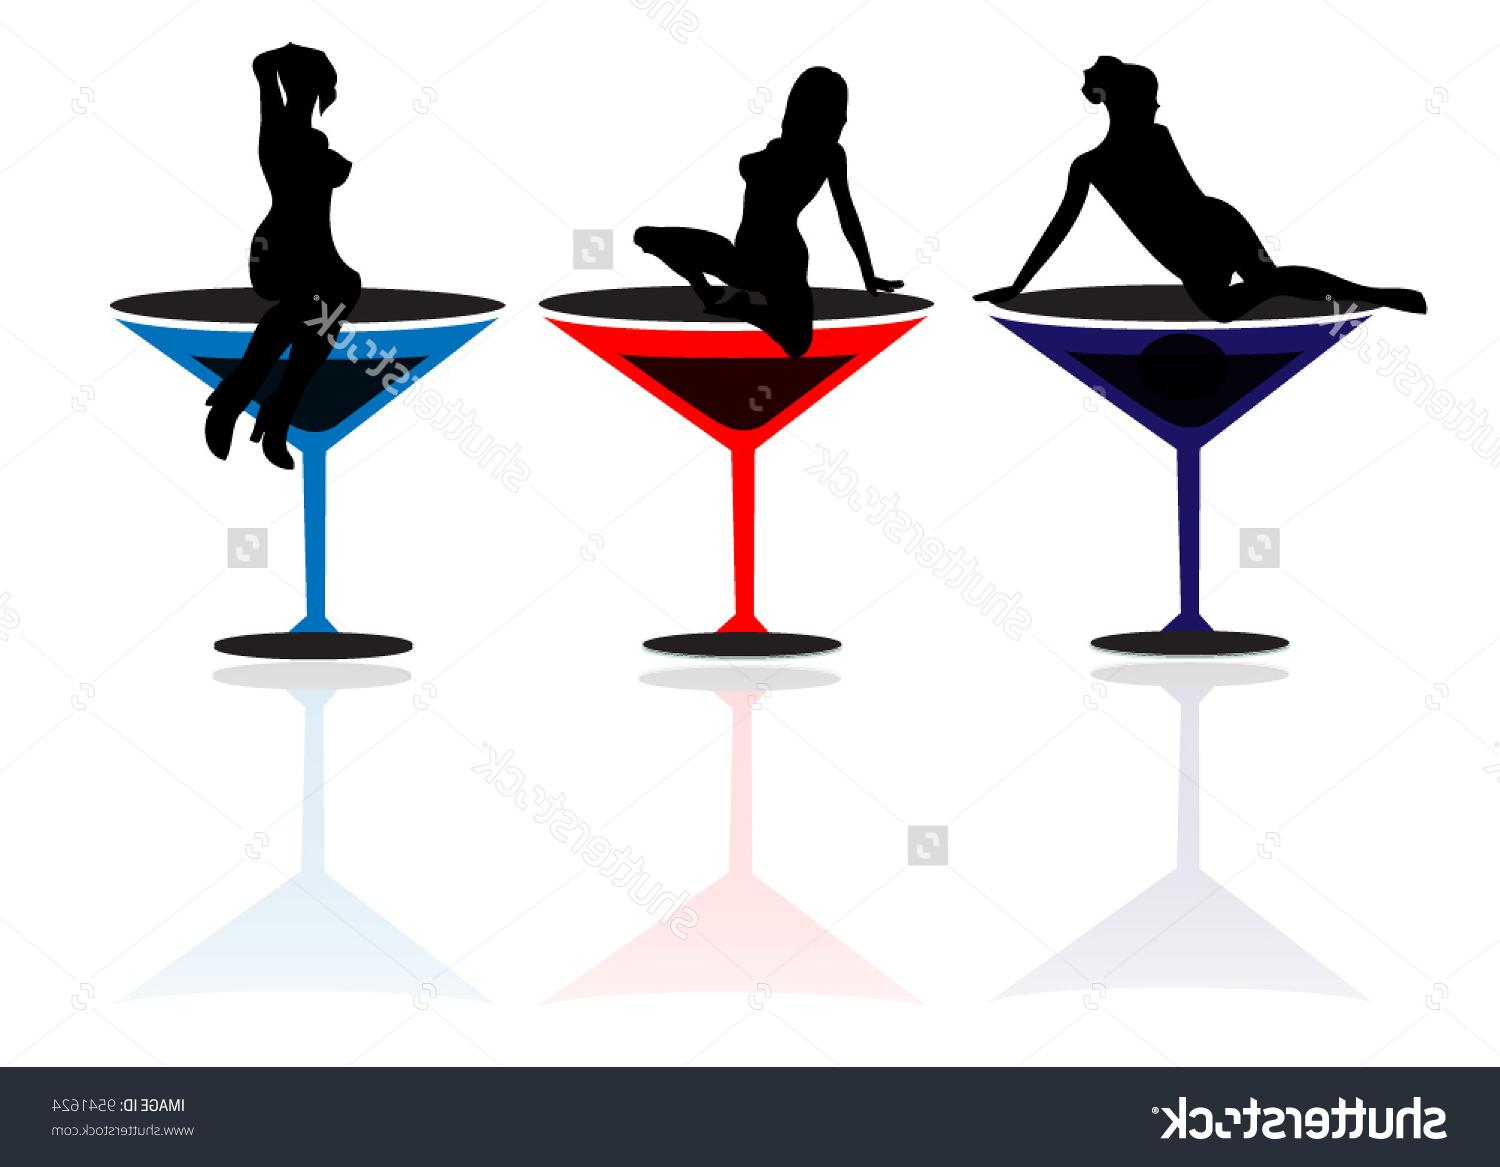 1500x1167 Top 10 Stock Vector Girls And Martini Glasses Image